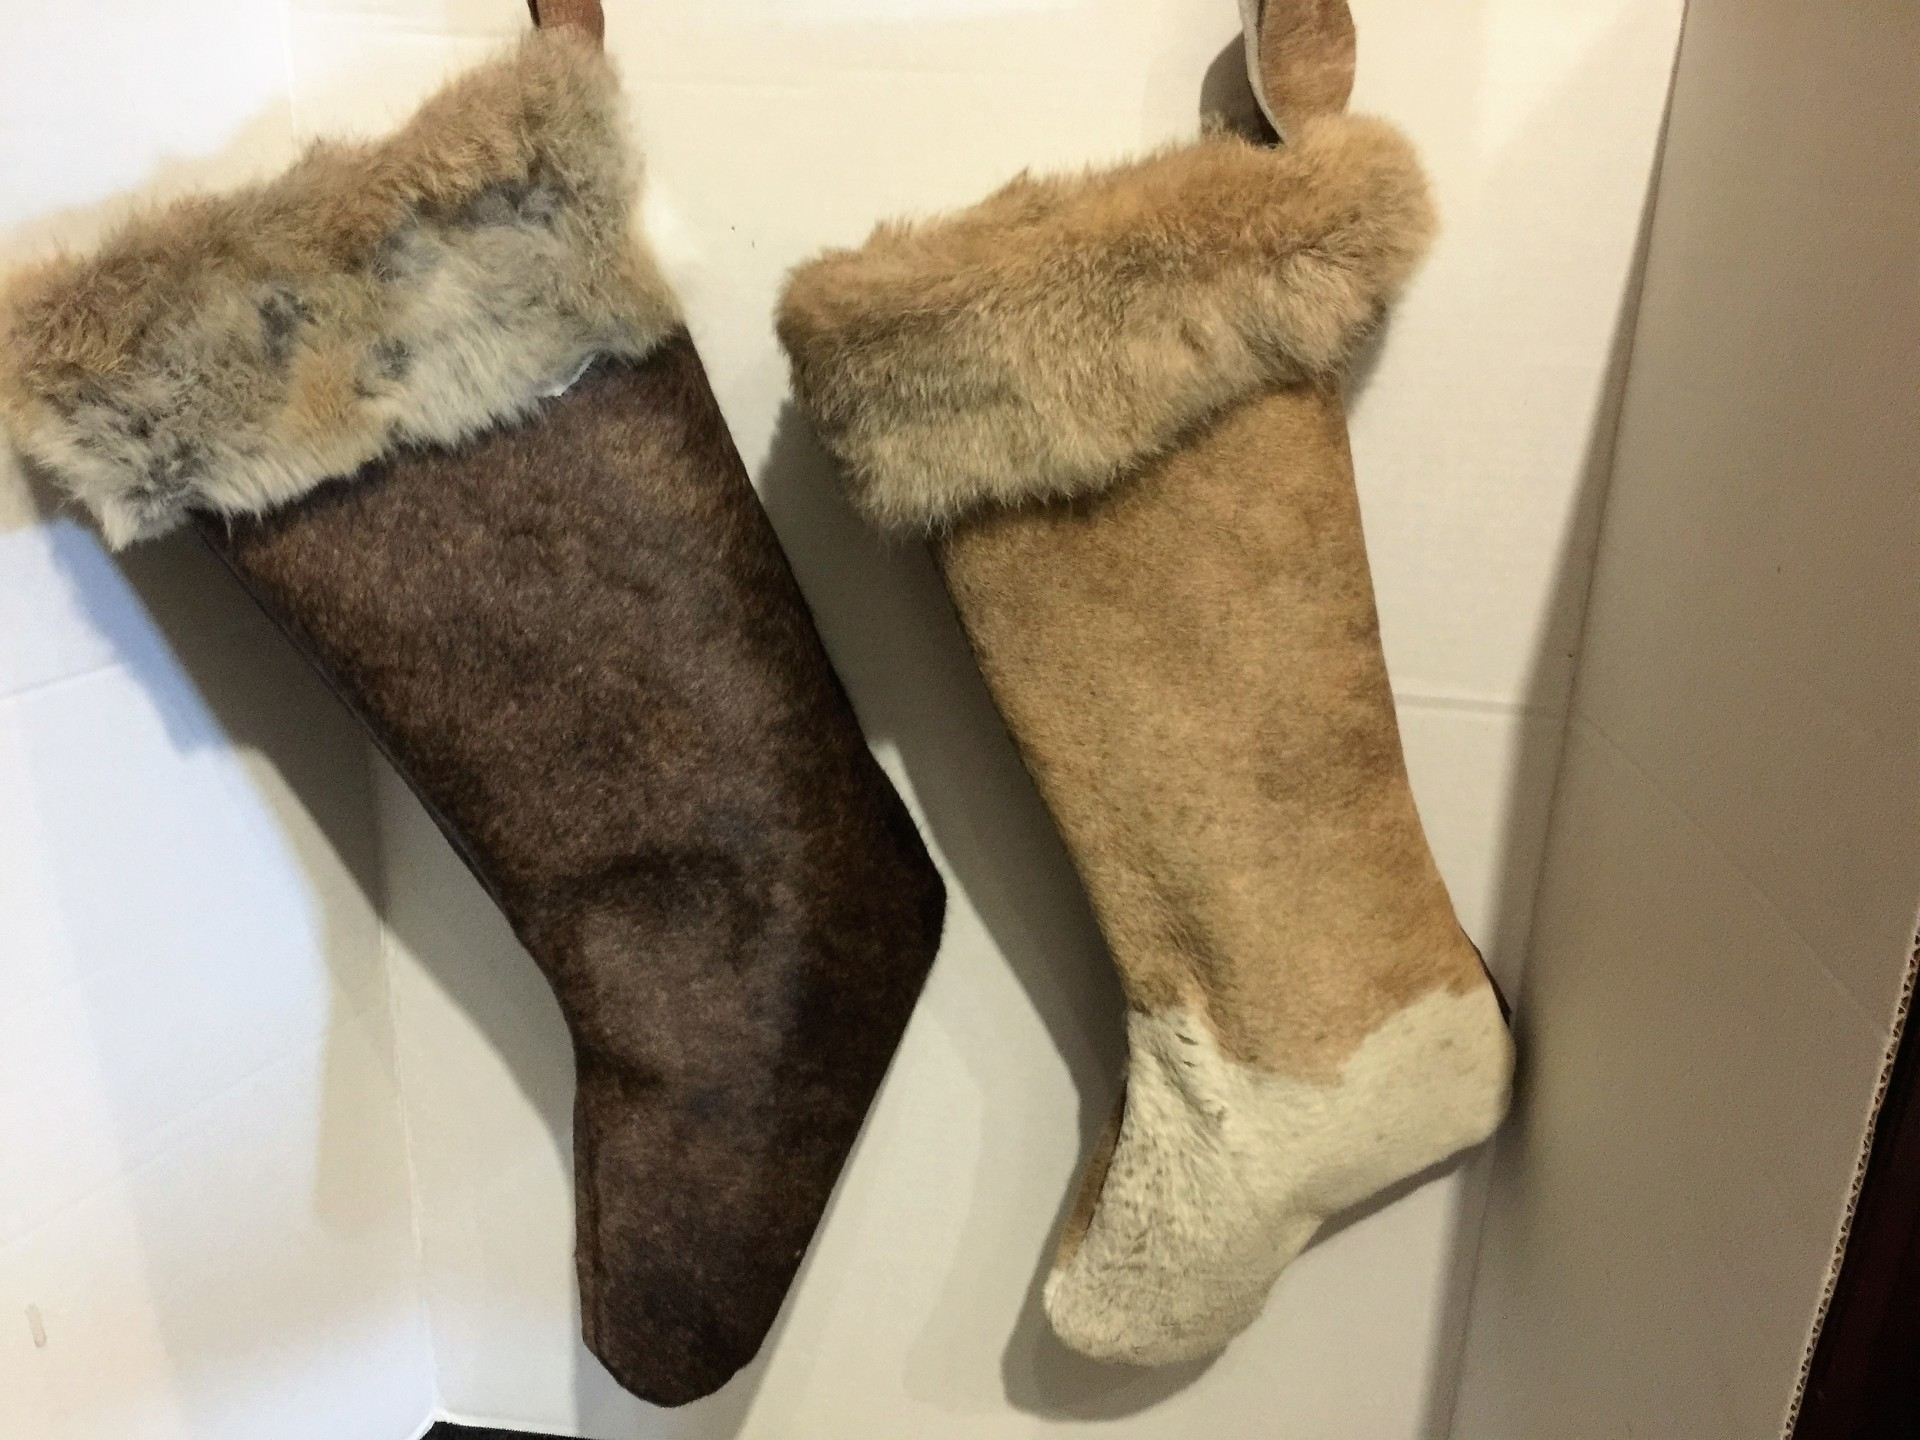 Cowhide Christmas Stockings trimmed with rabbit fur